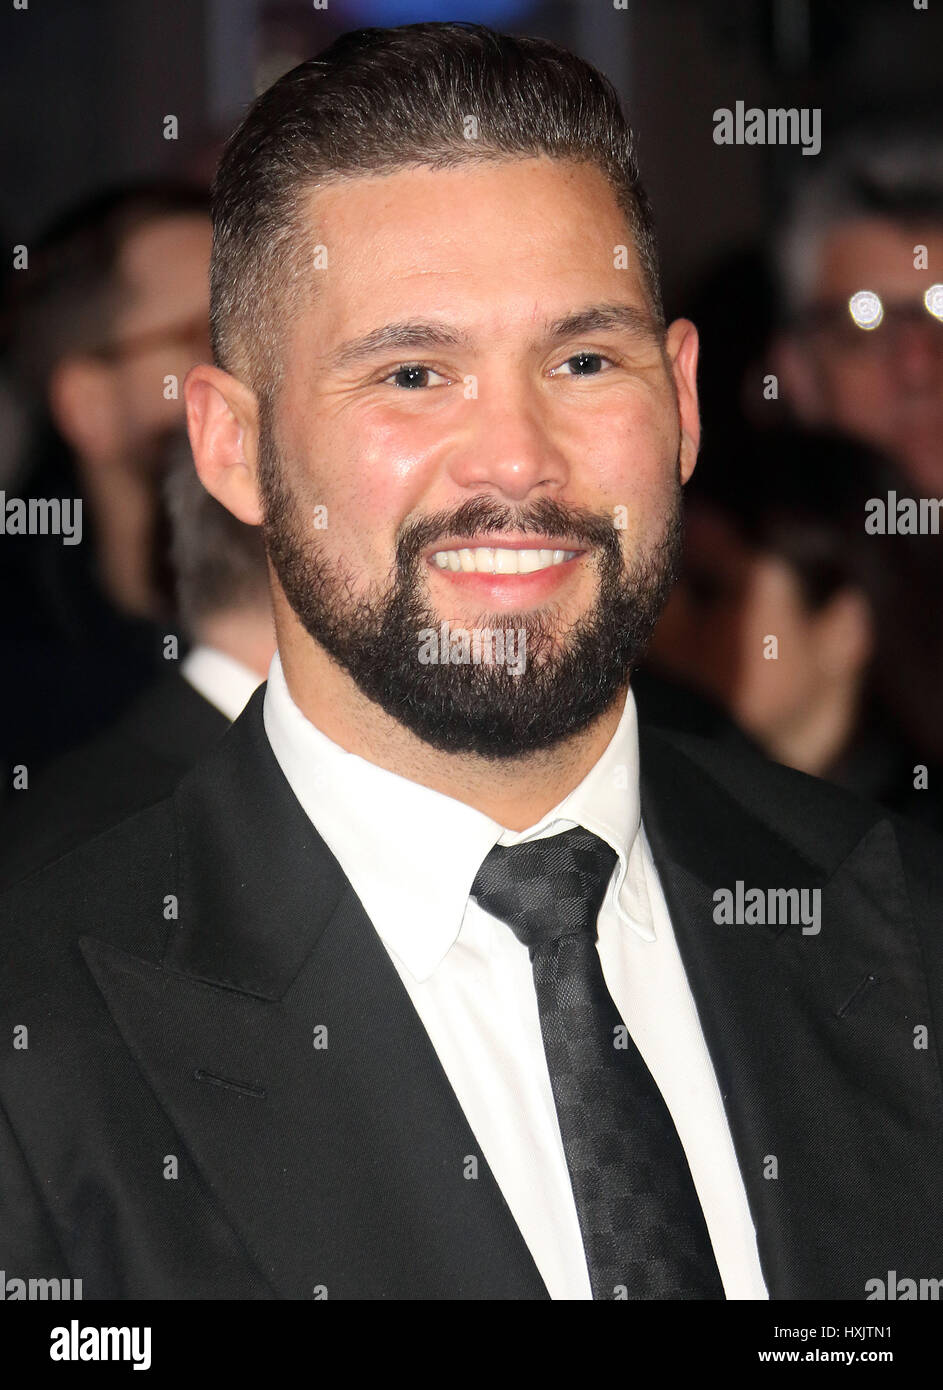 Mar 16, 2017 - Tony Bellow attending Another Mother's Son' World Premiere, Odeon Leicester Square in London, - Stock Image